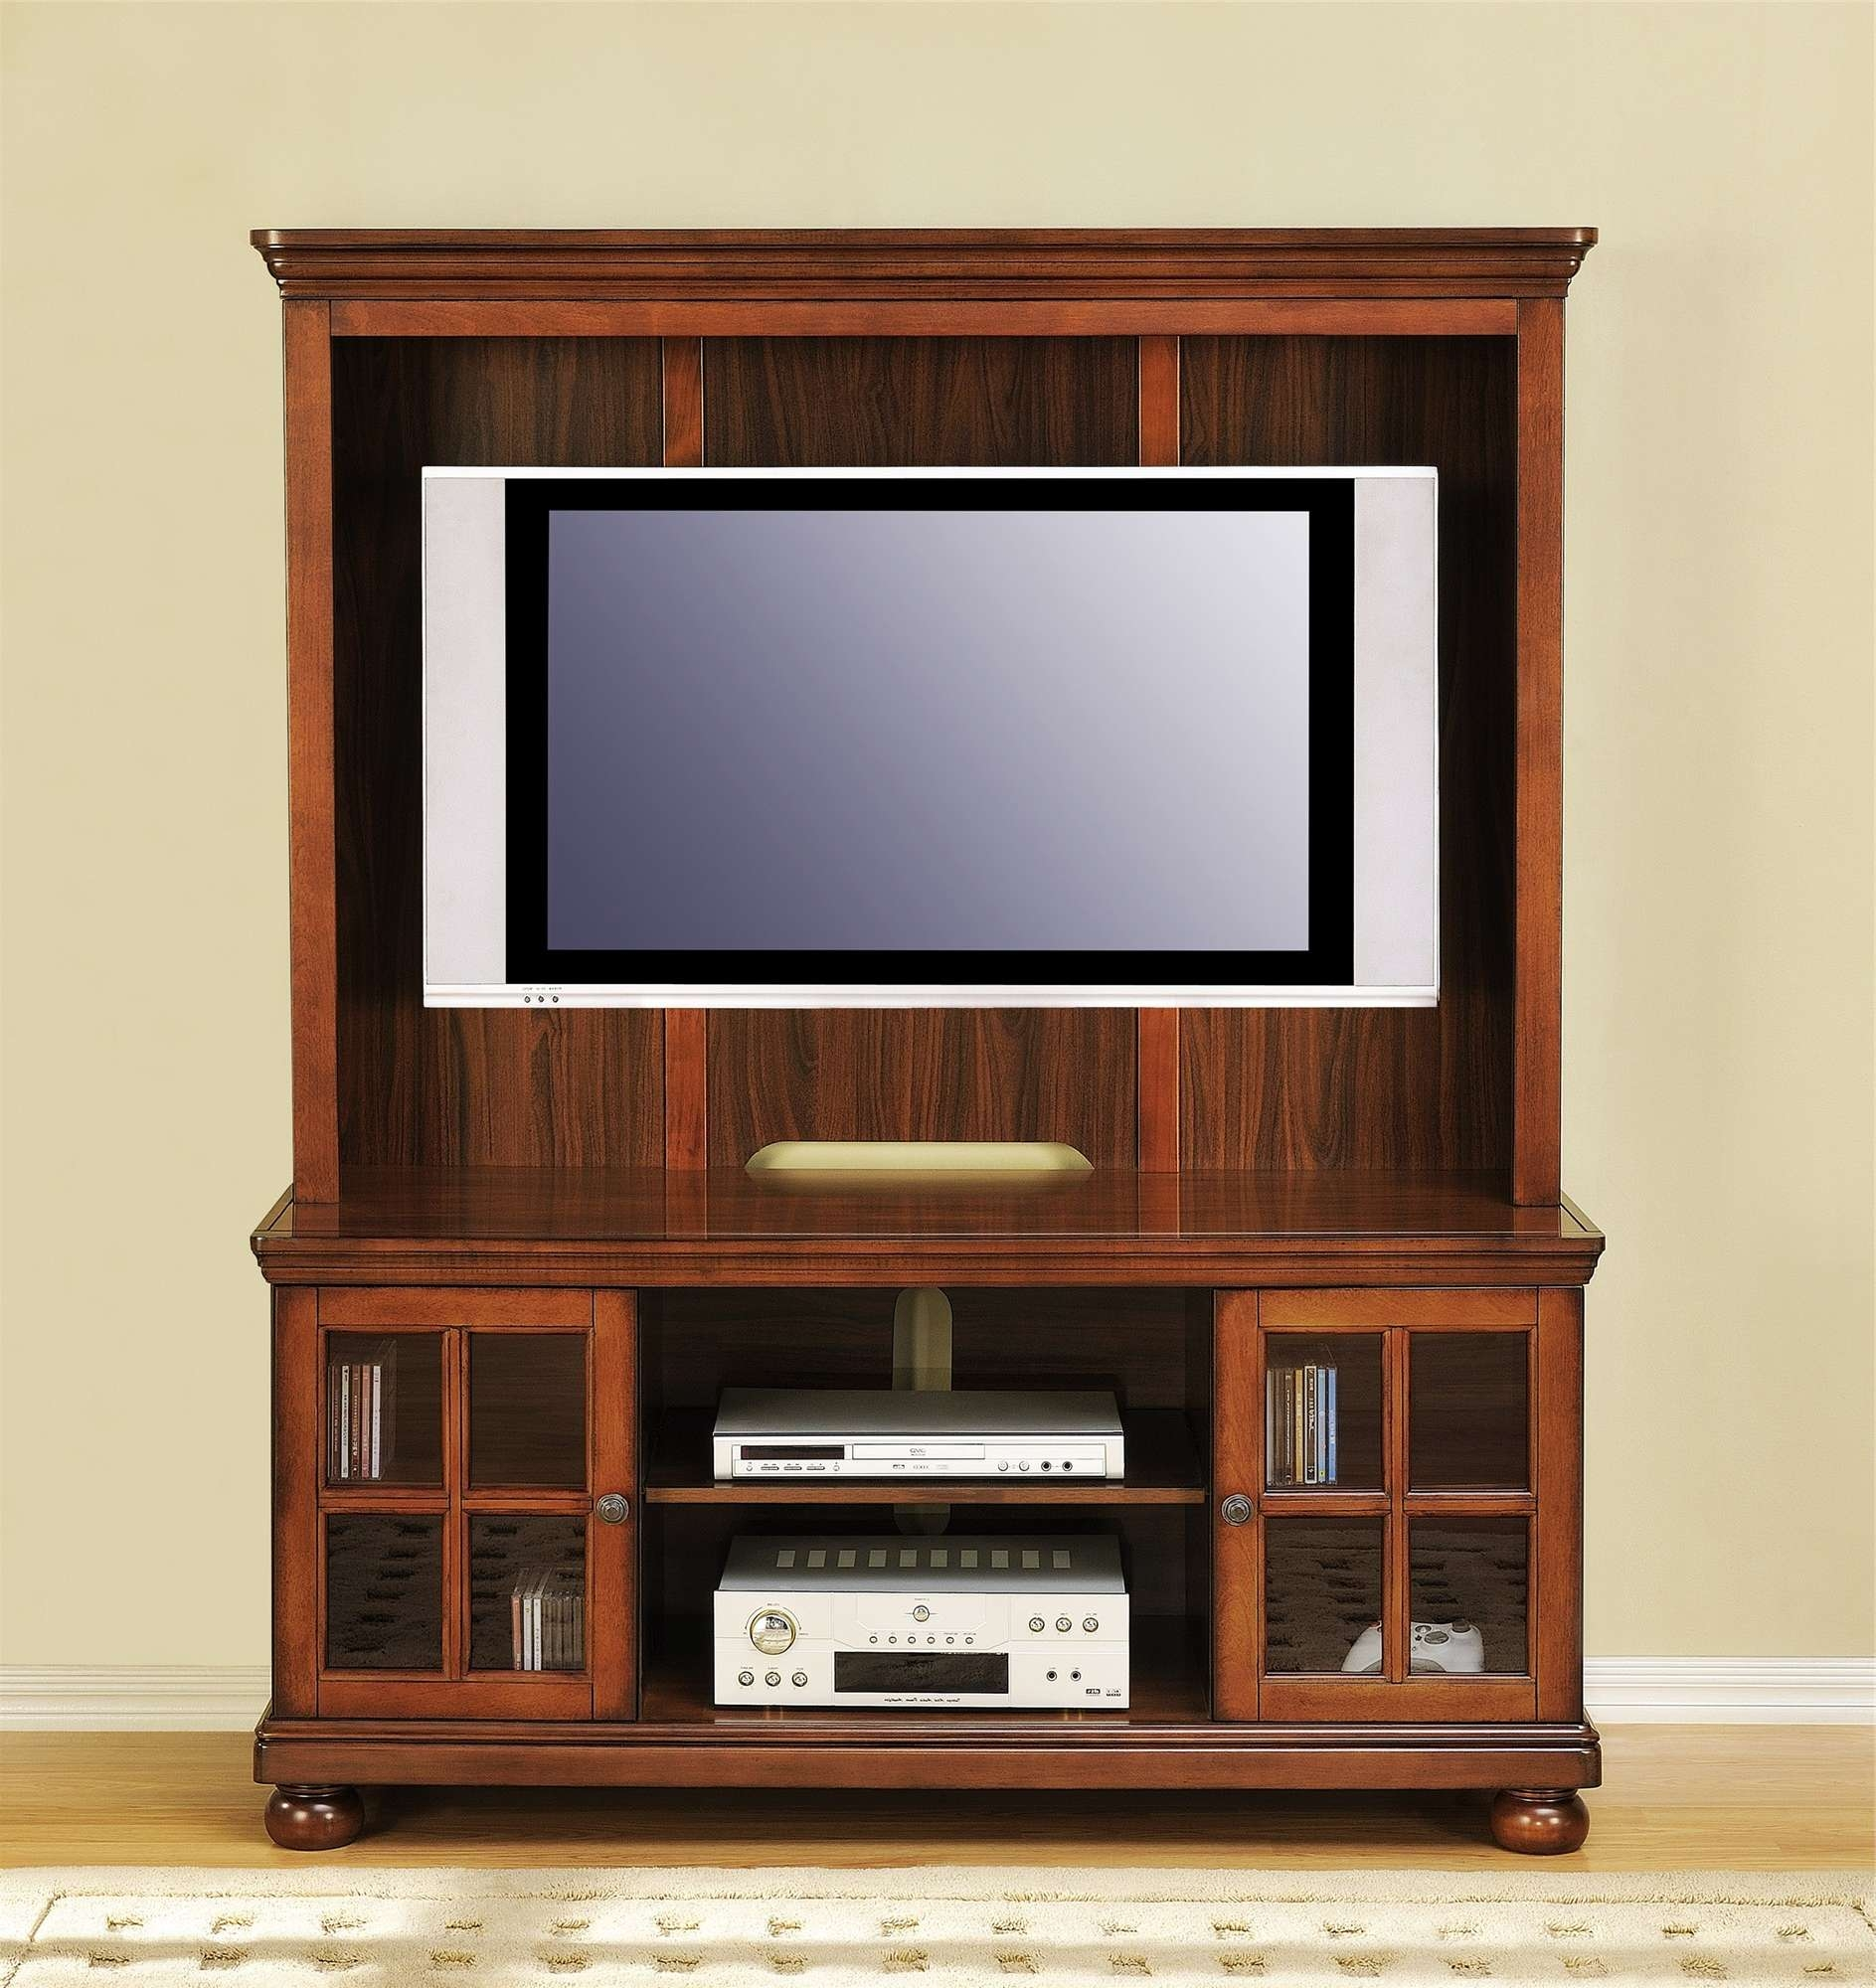 Big Tv Cabinet – Home Design Ideas And Pictures Regarding Wooden Tv Cabinets With Glass Doors (View 2 of 20)